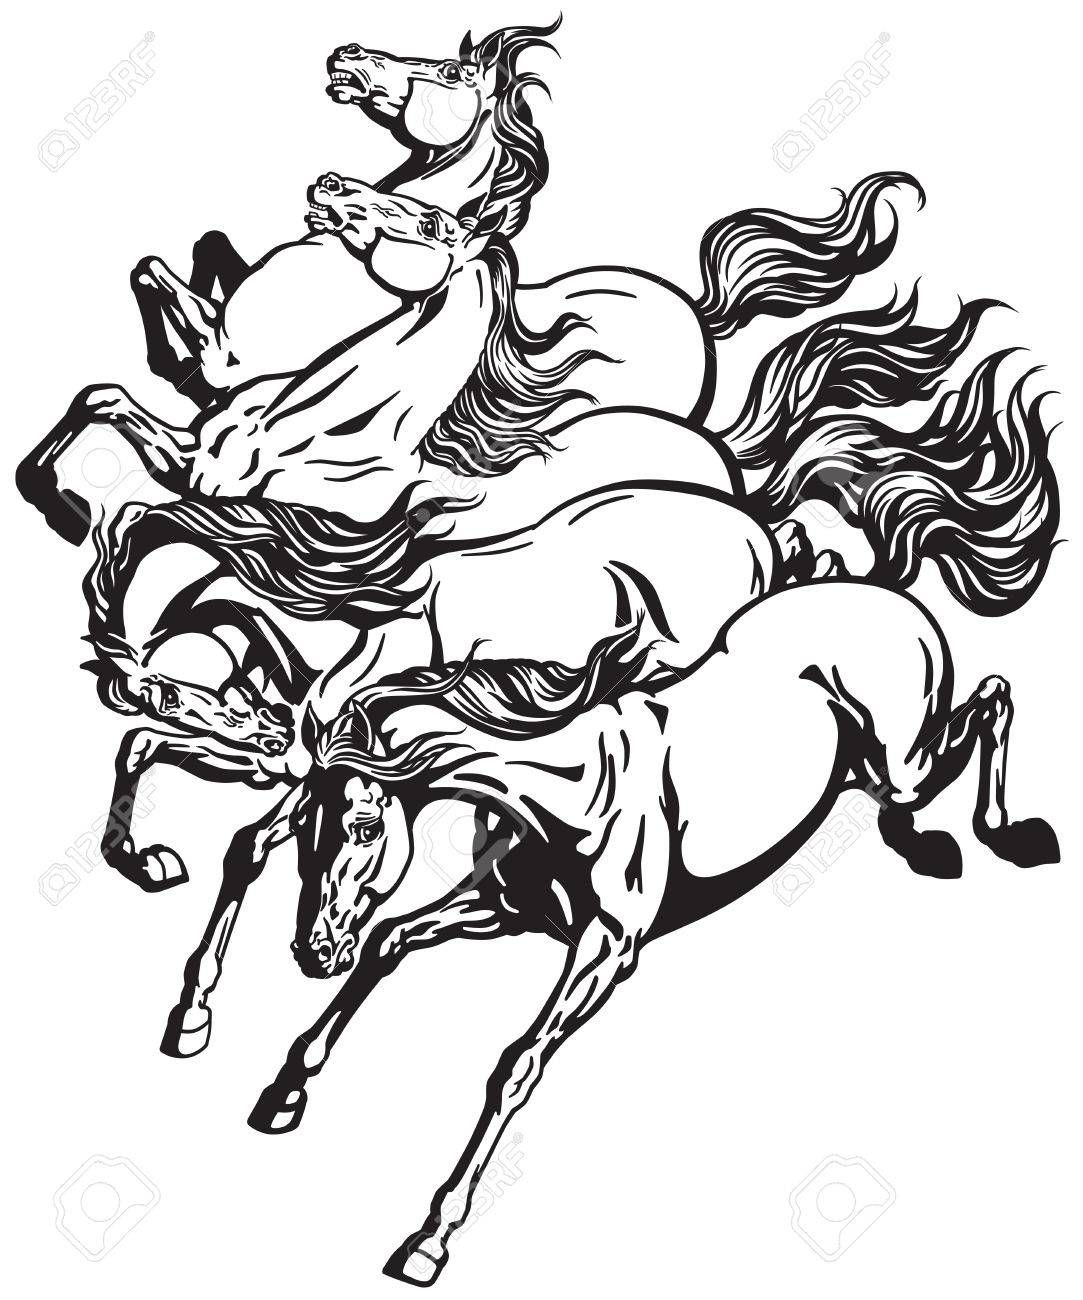 Horses Four Running Wild Mustangs Black And White Tattoo Vector Horse Coloring Pages Horse Tattoo Design Horse Tattoo [ 1300 x 1083 Pixel ]